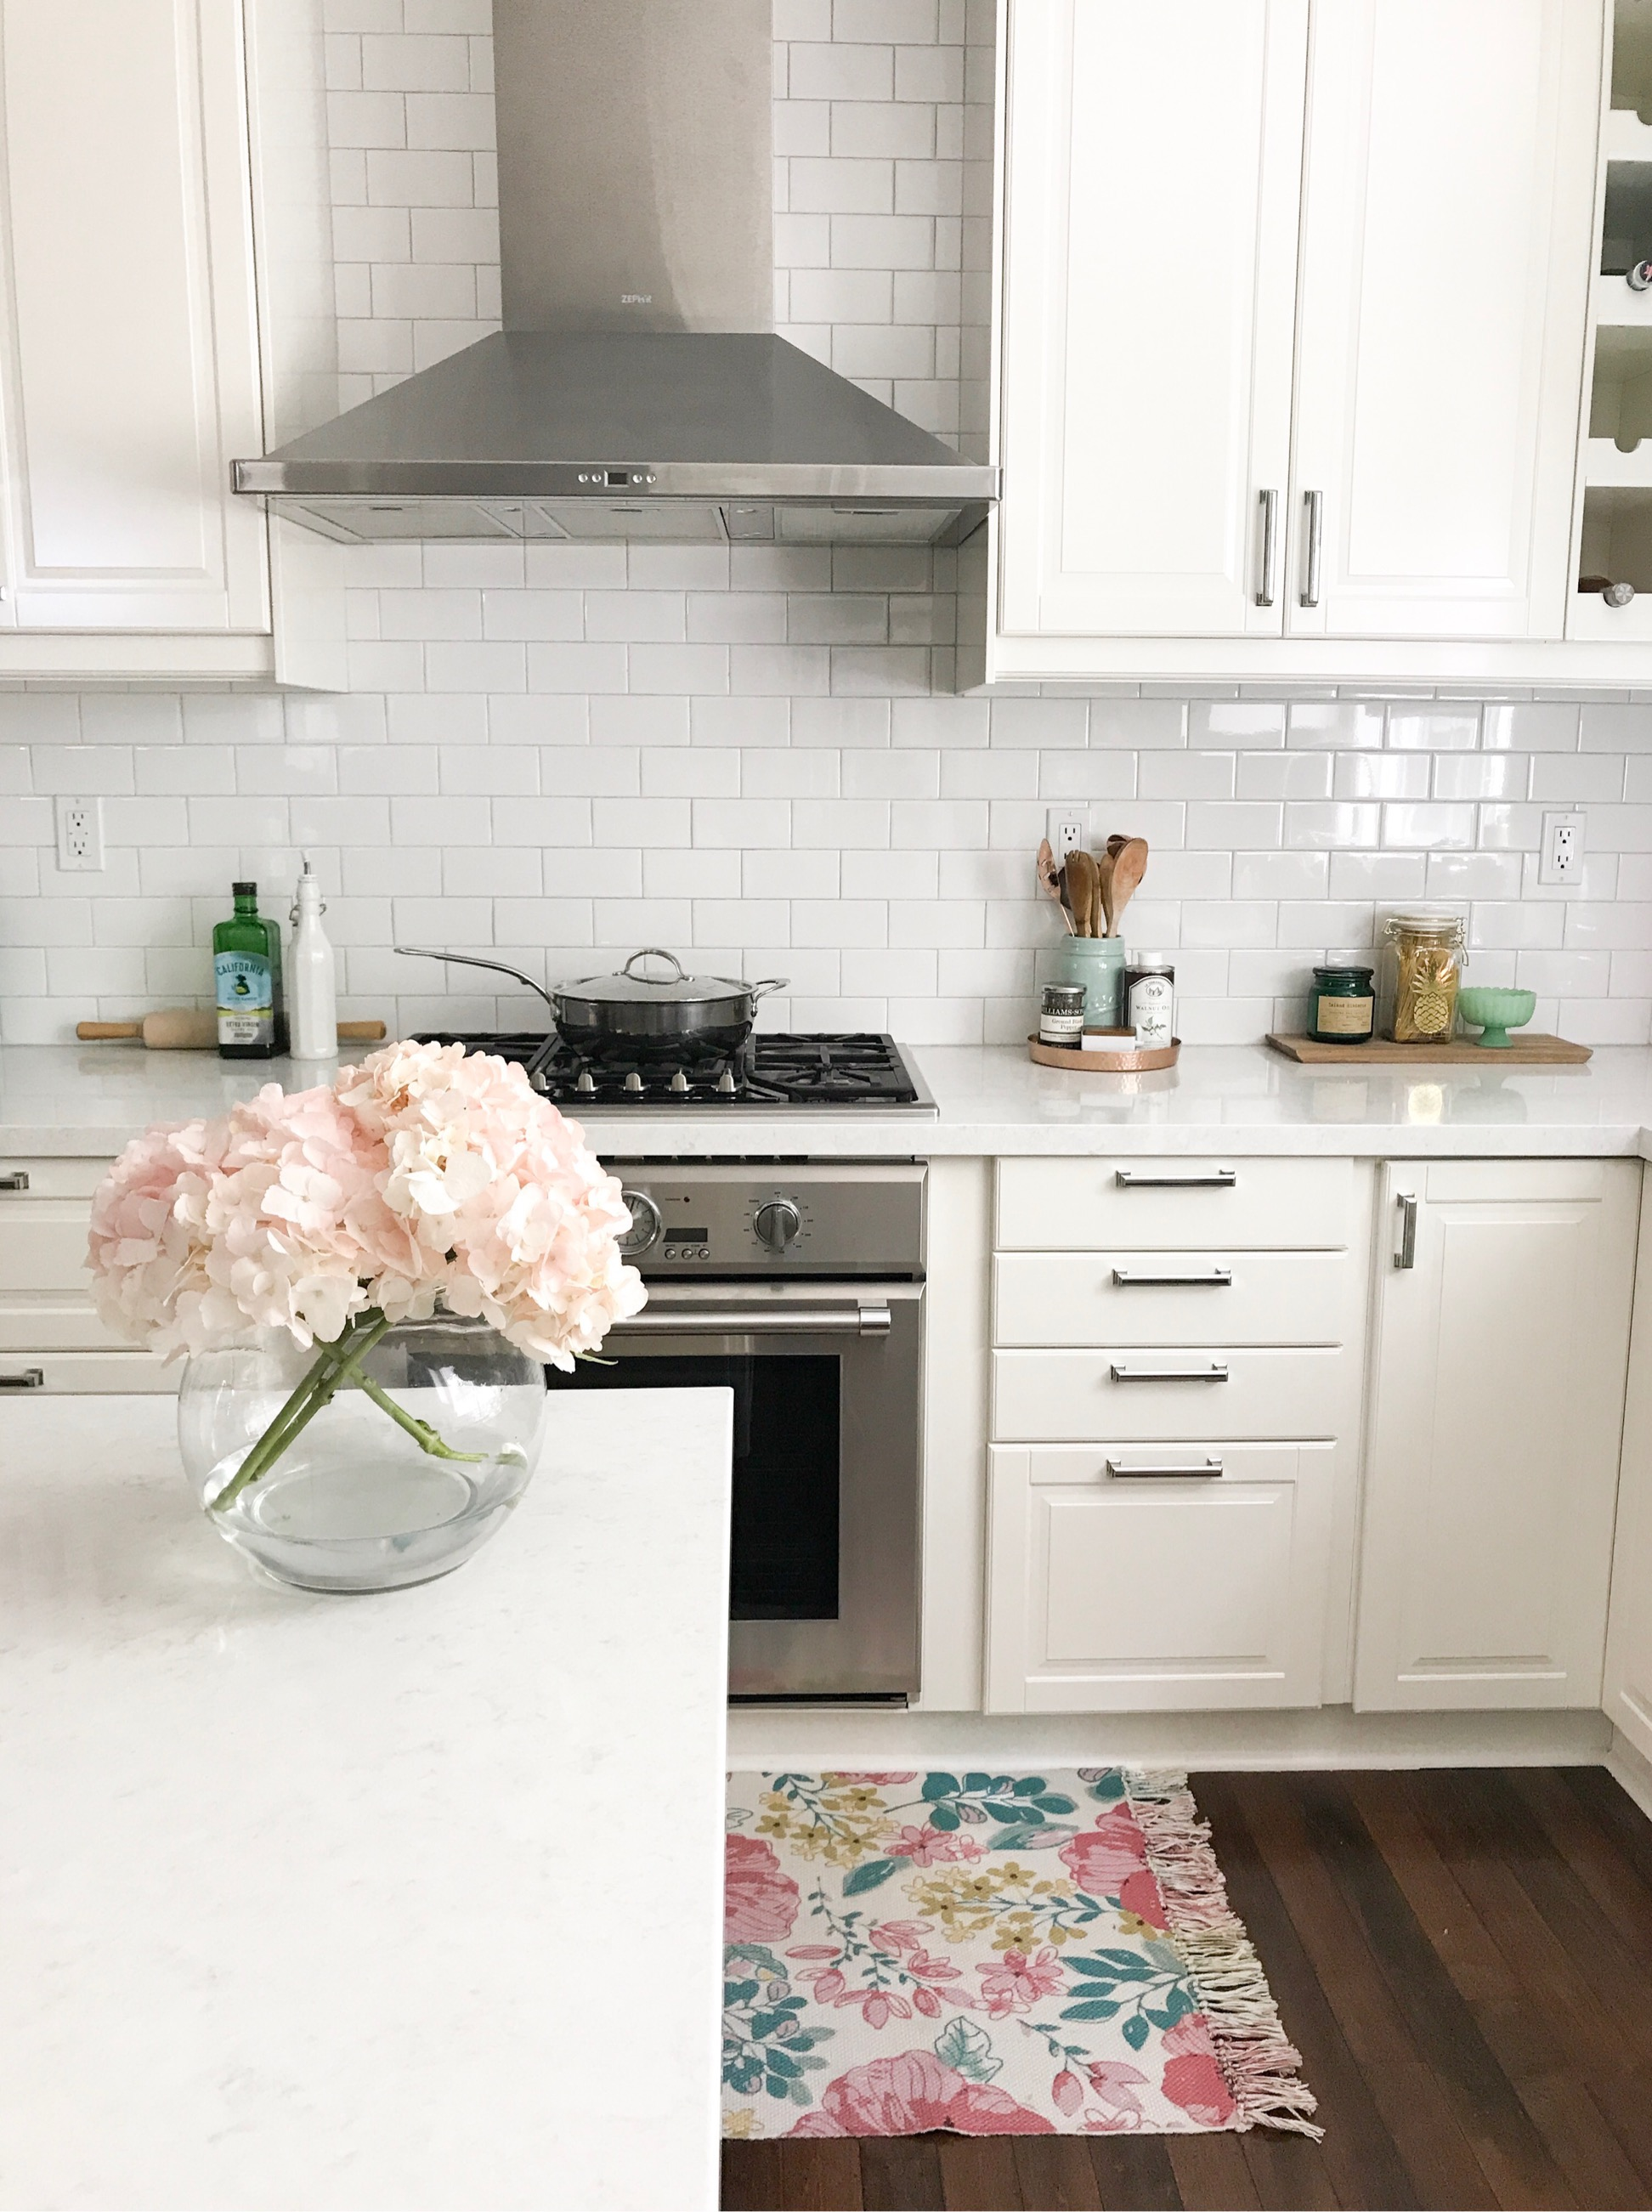 Luckily, When I Searched The Internet For IKEA Kitchen Design Inspiration I  Stumbled Upon One Of My Favorite Real Life IKEA Kitchenu0027s From Blogger Dana  ...